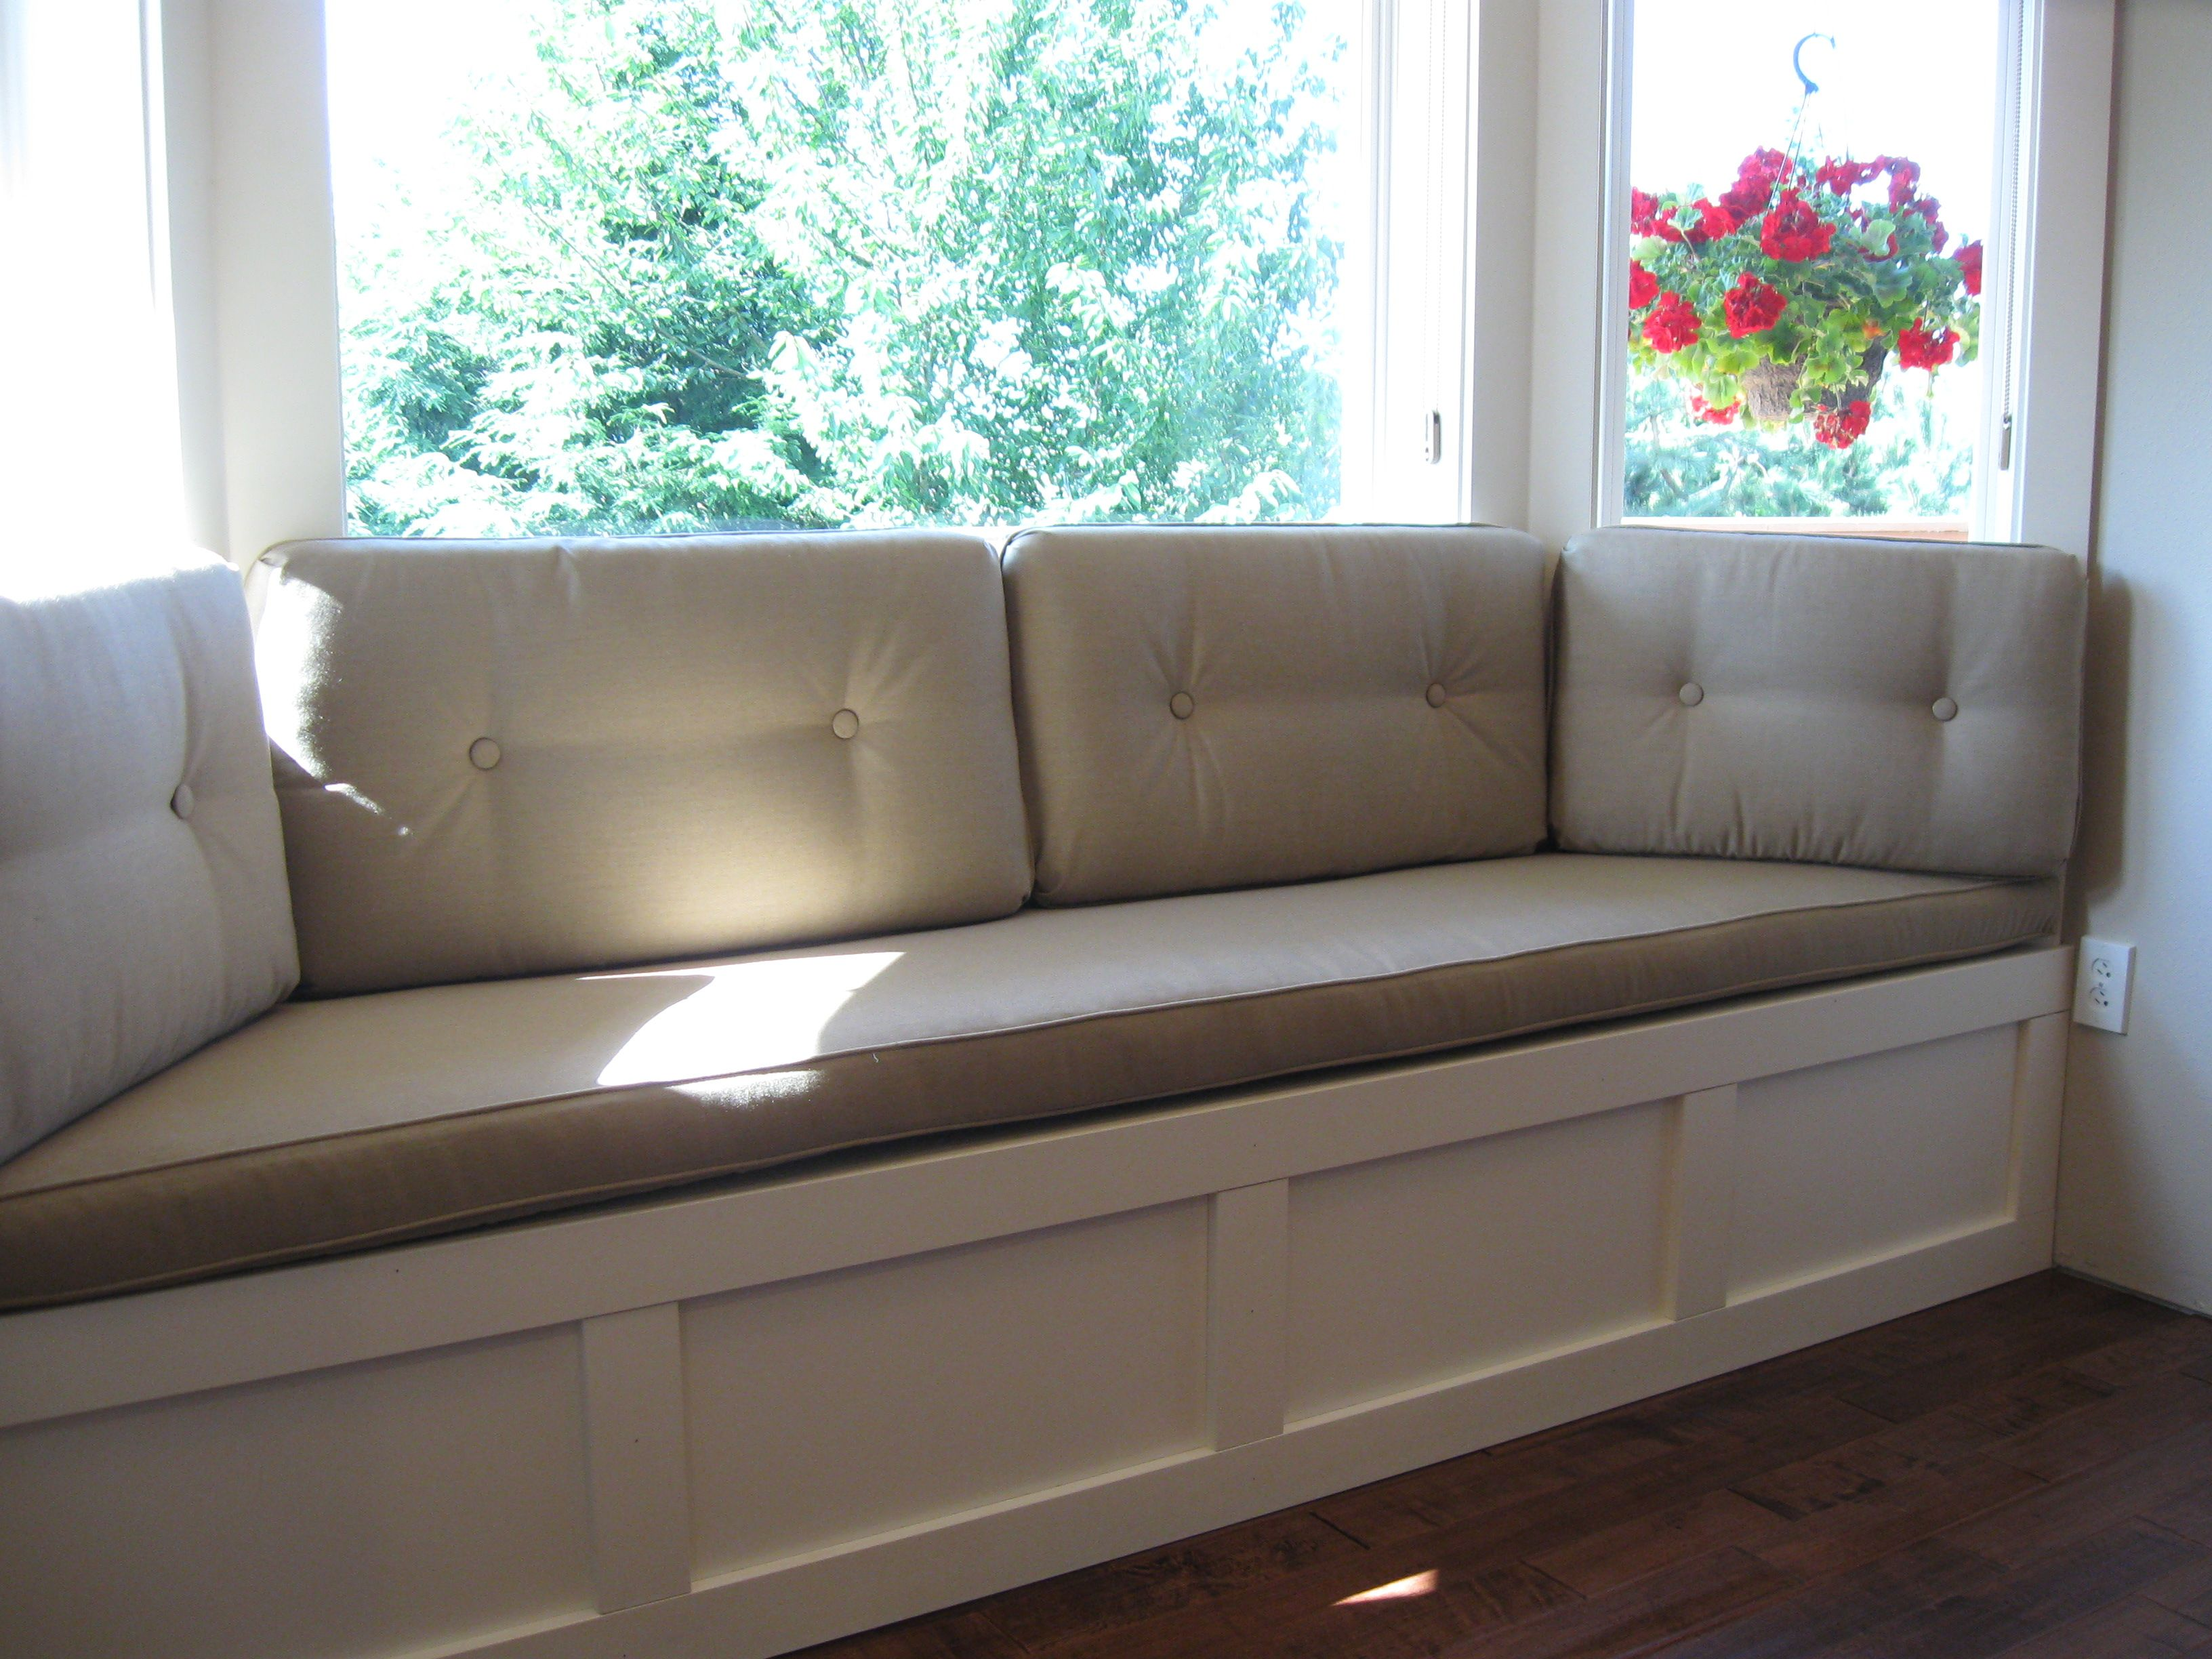 Bay Window Couch window seat cushions | window seat ideas 3264x2448 seamstress blog